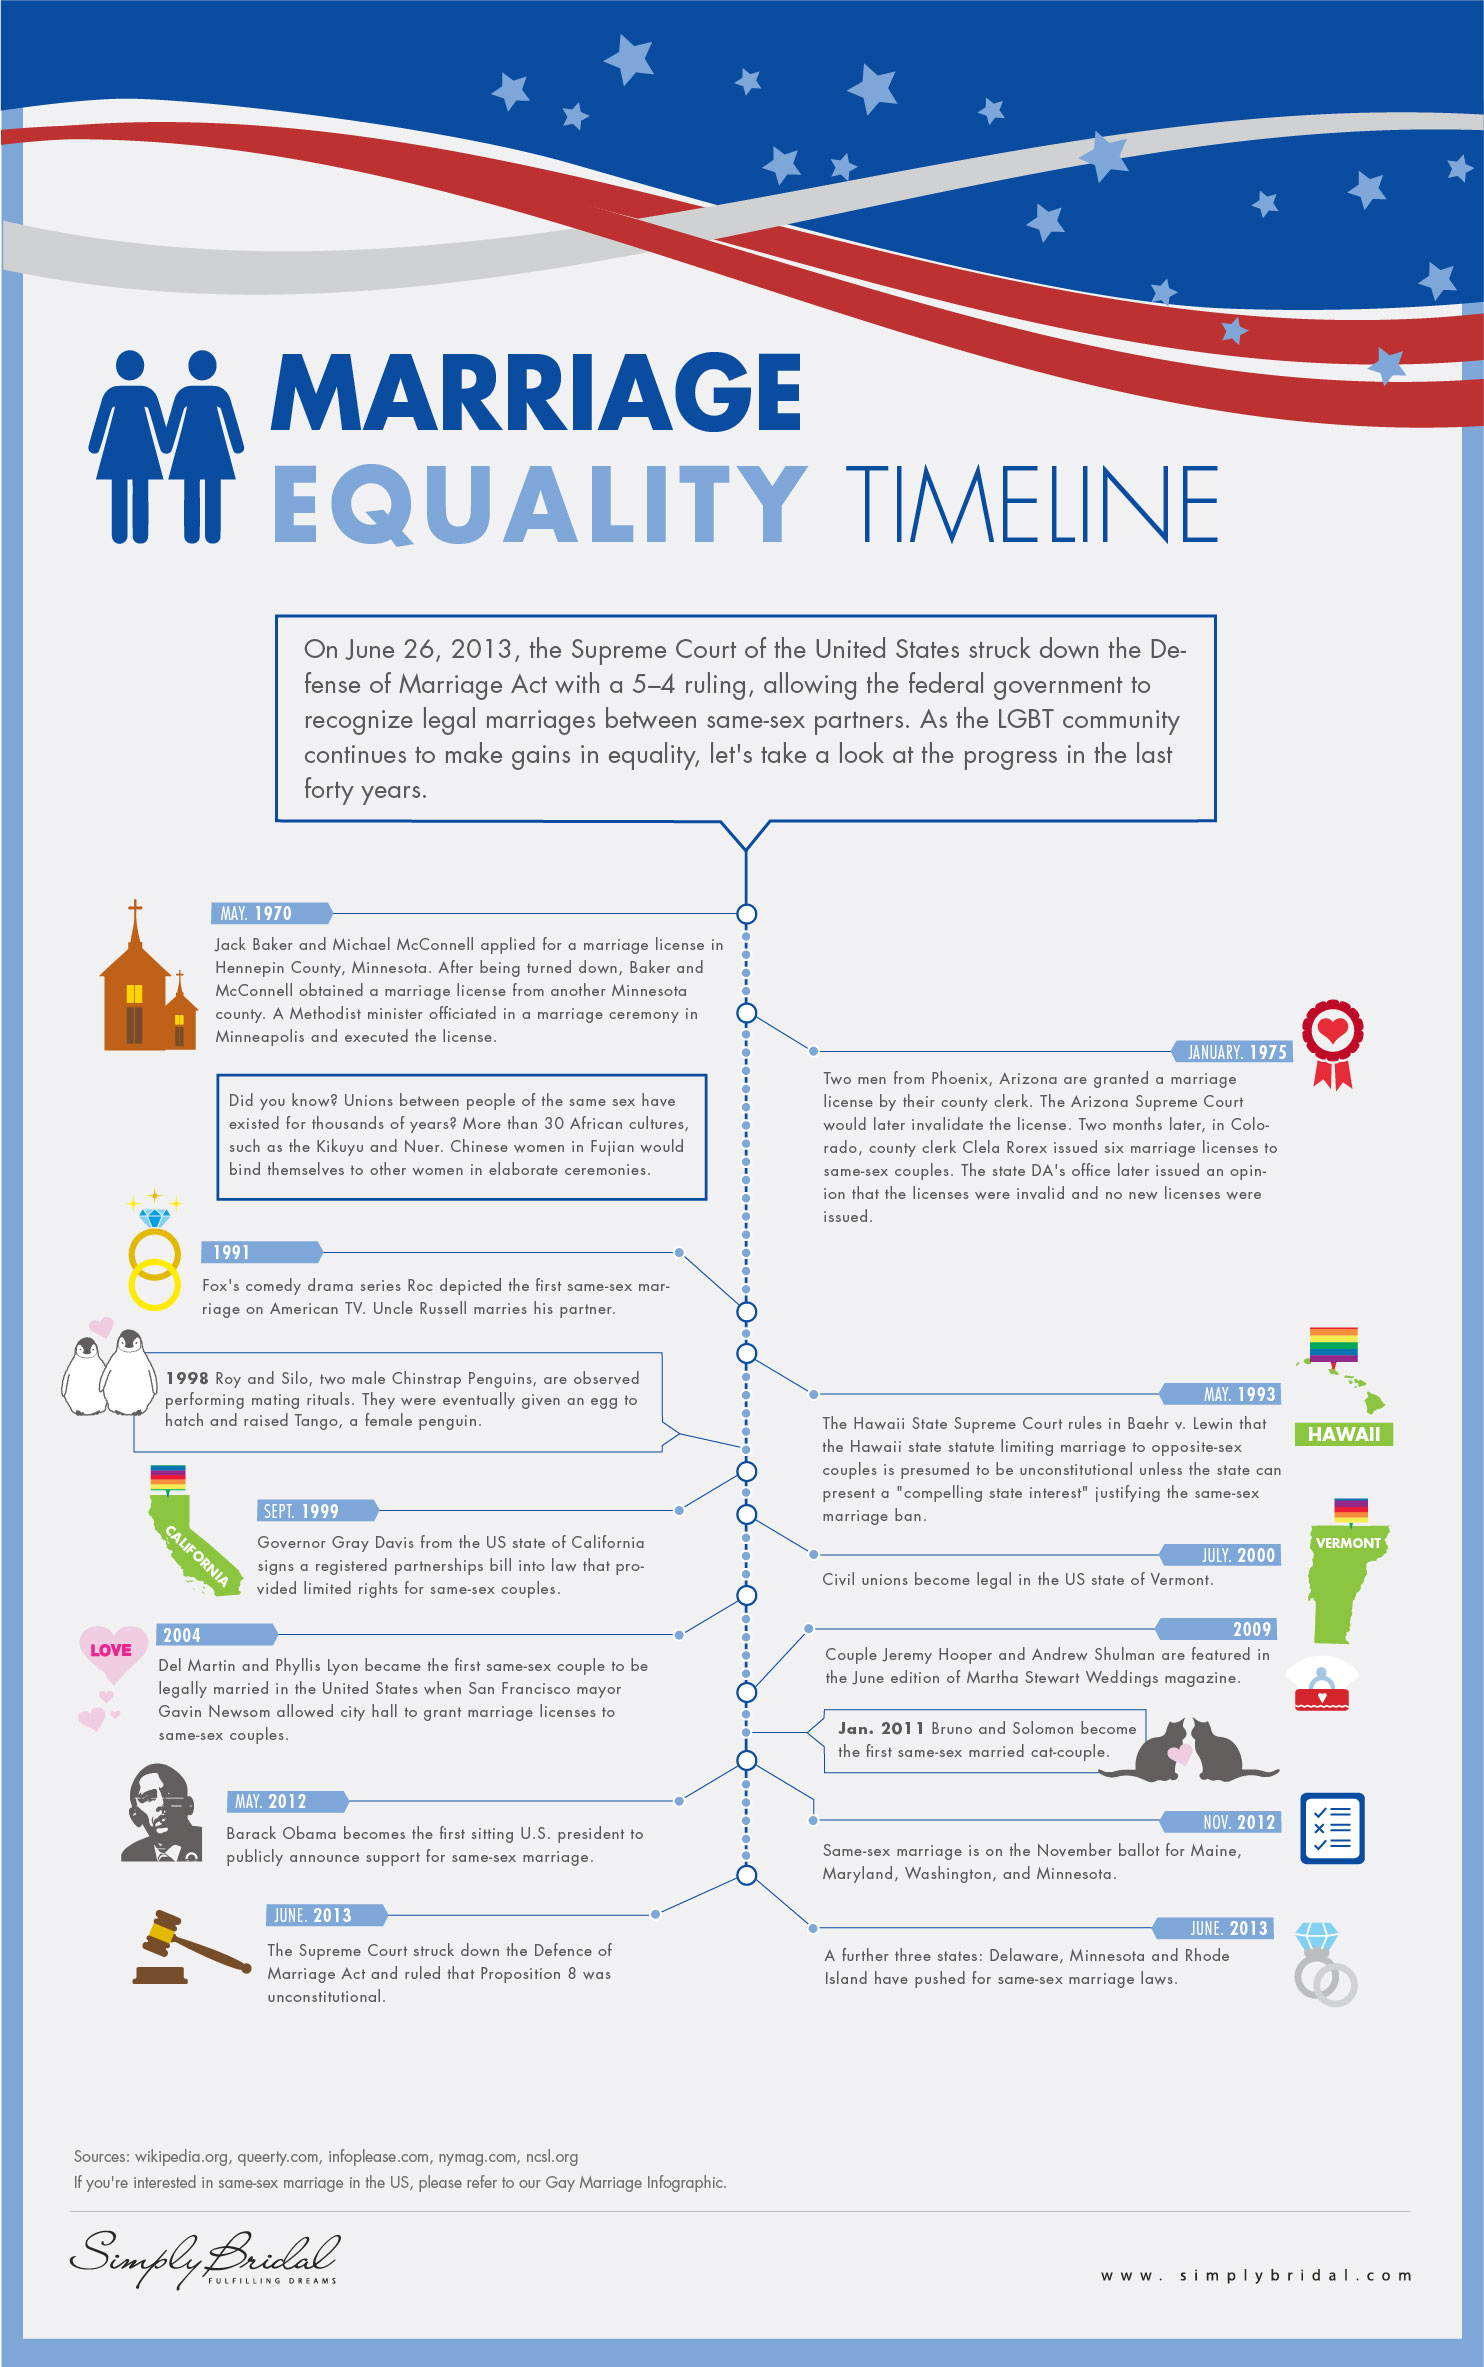 Gay Marriage Timeline 2013